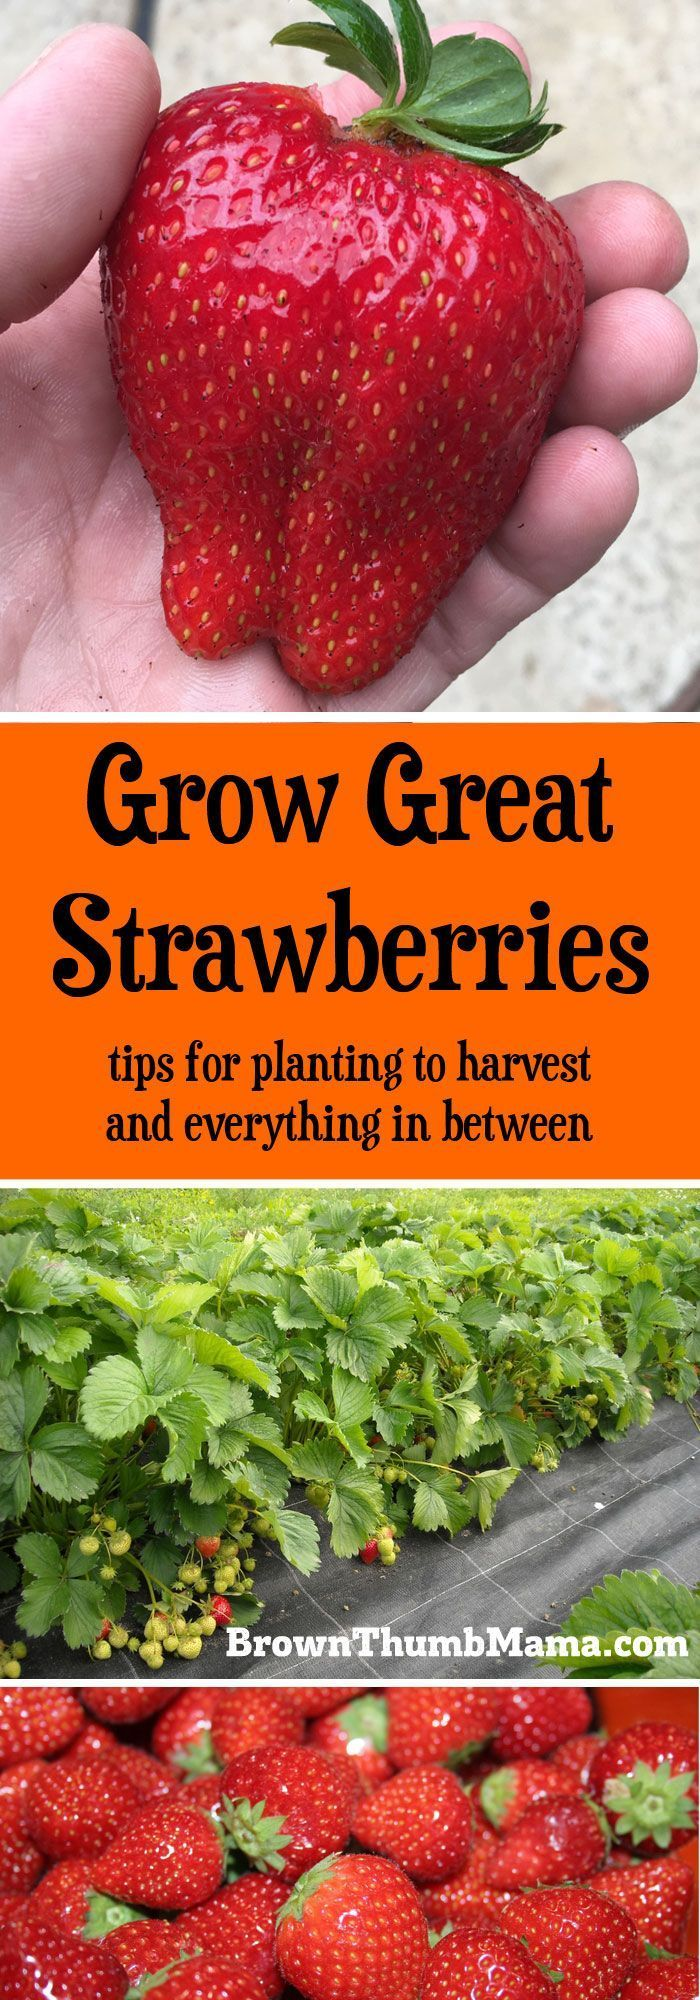 Strawberries are super-easy to grow, but there are a few important tips to keep in mind. Here��s everything you need to know to grow gallons of strawberries in your garden.